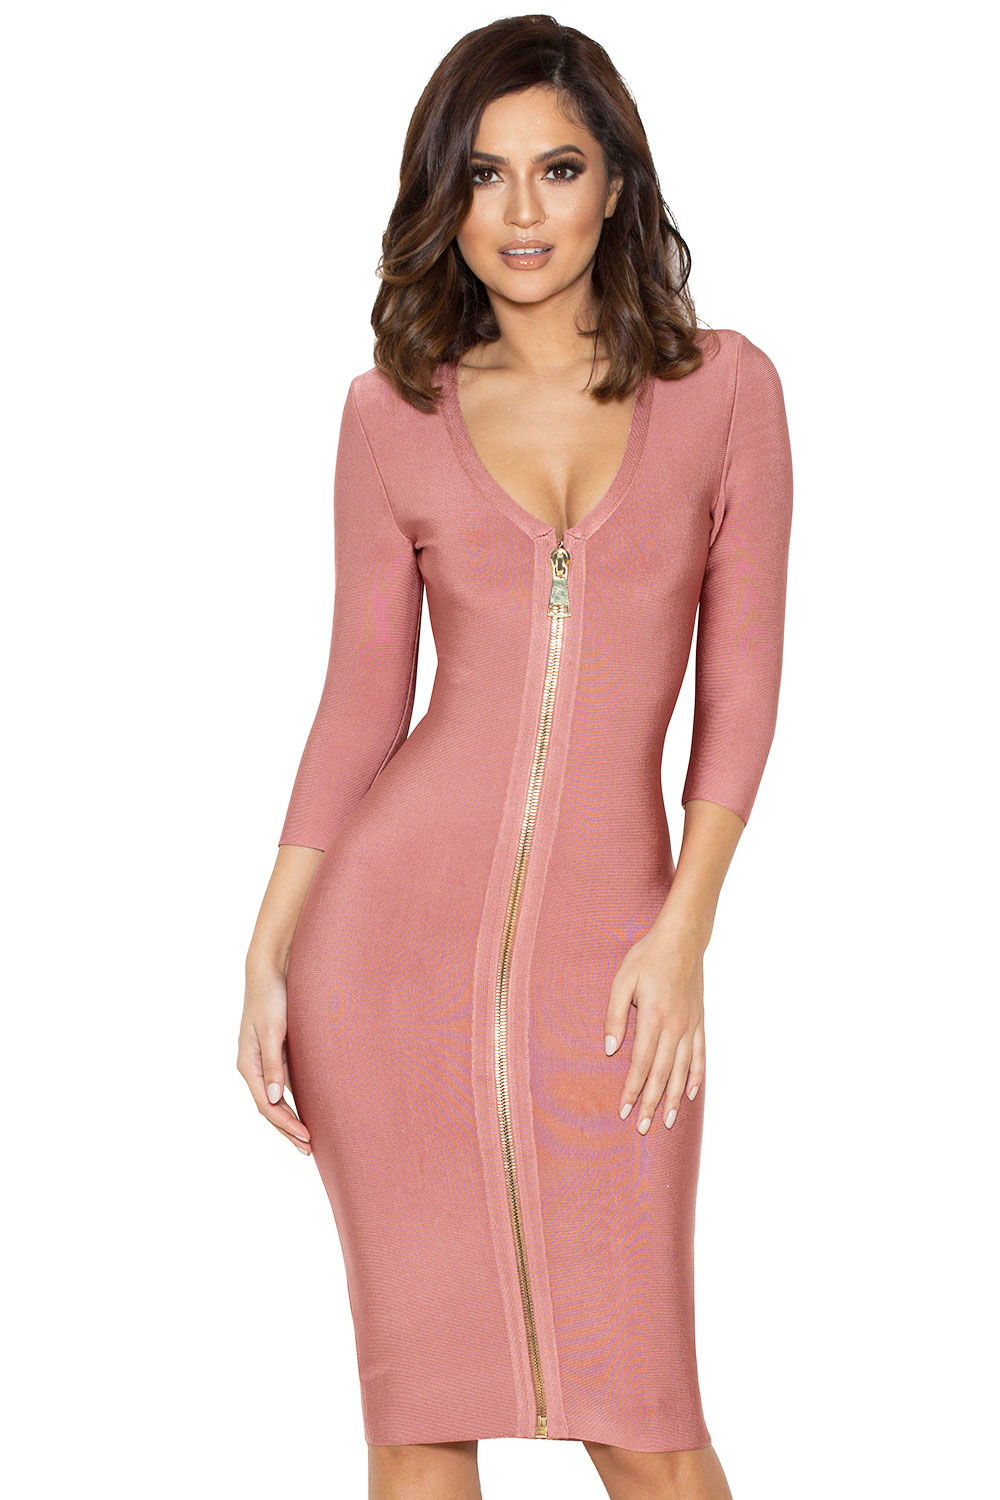 Clothing : Bandage Dresses : 'Ila' Rose Pink Bandage Dress